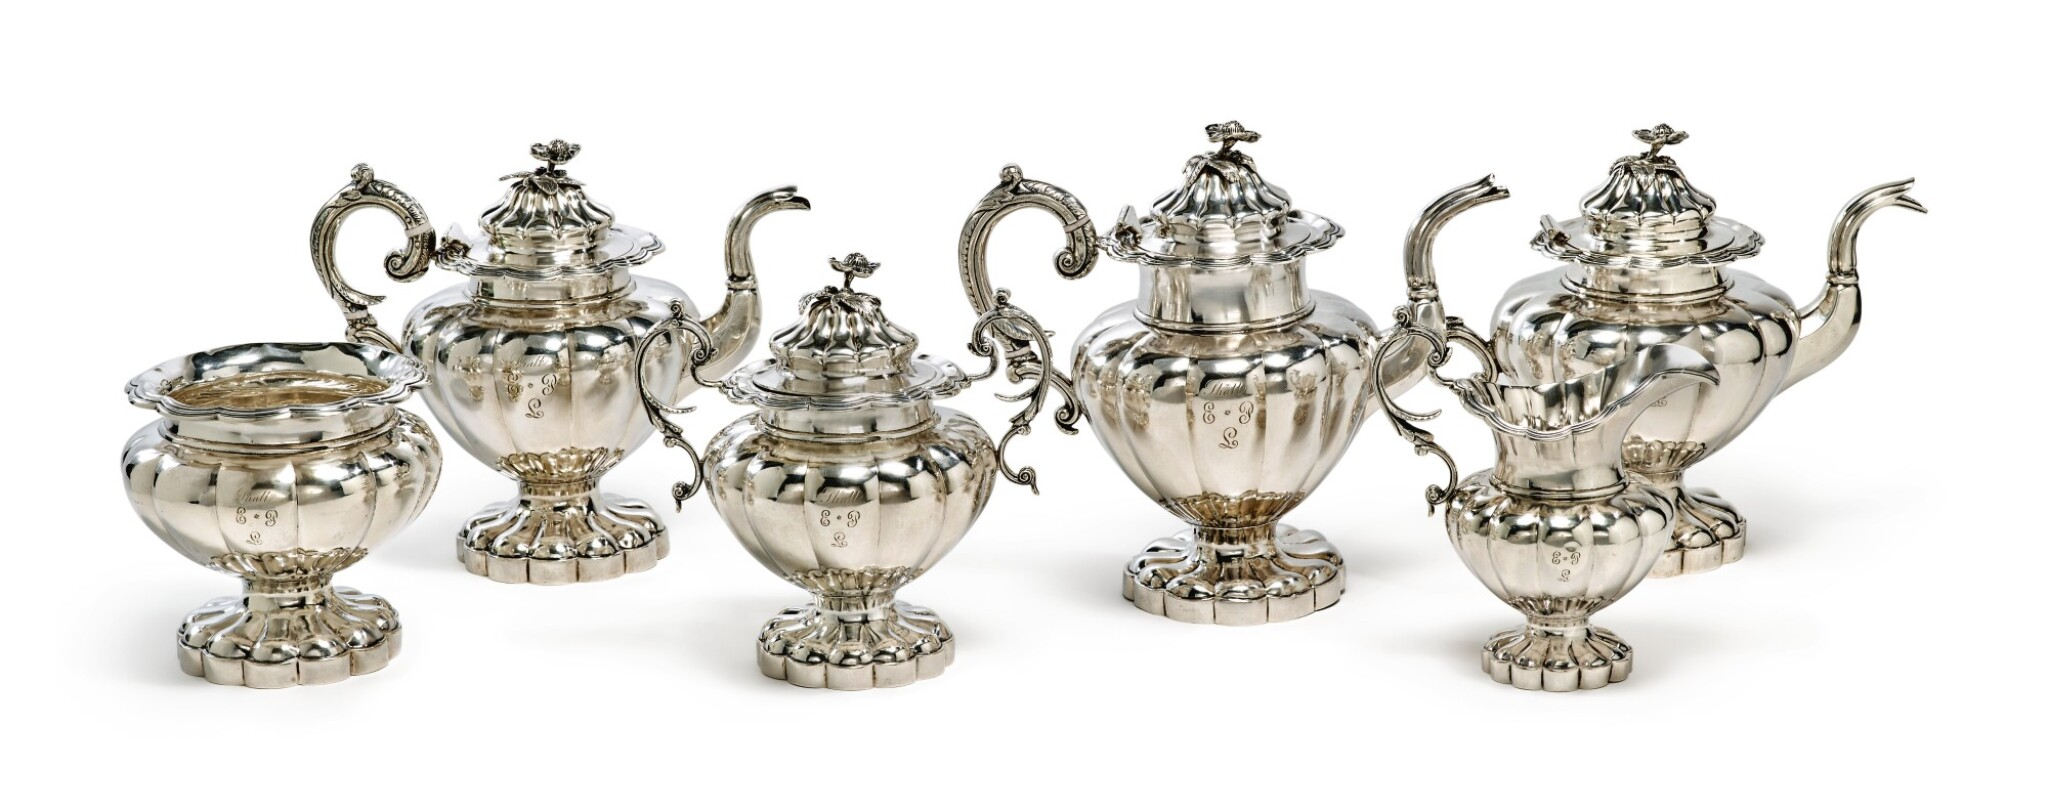 View full screen - View 1 of Lot 412. A Rare American Southern Silver Six-Piece Tea Set, S&B Brower, New Orleans, 1834-1842.